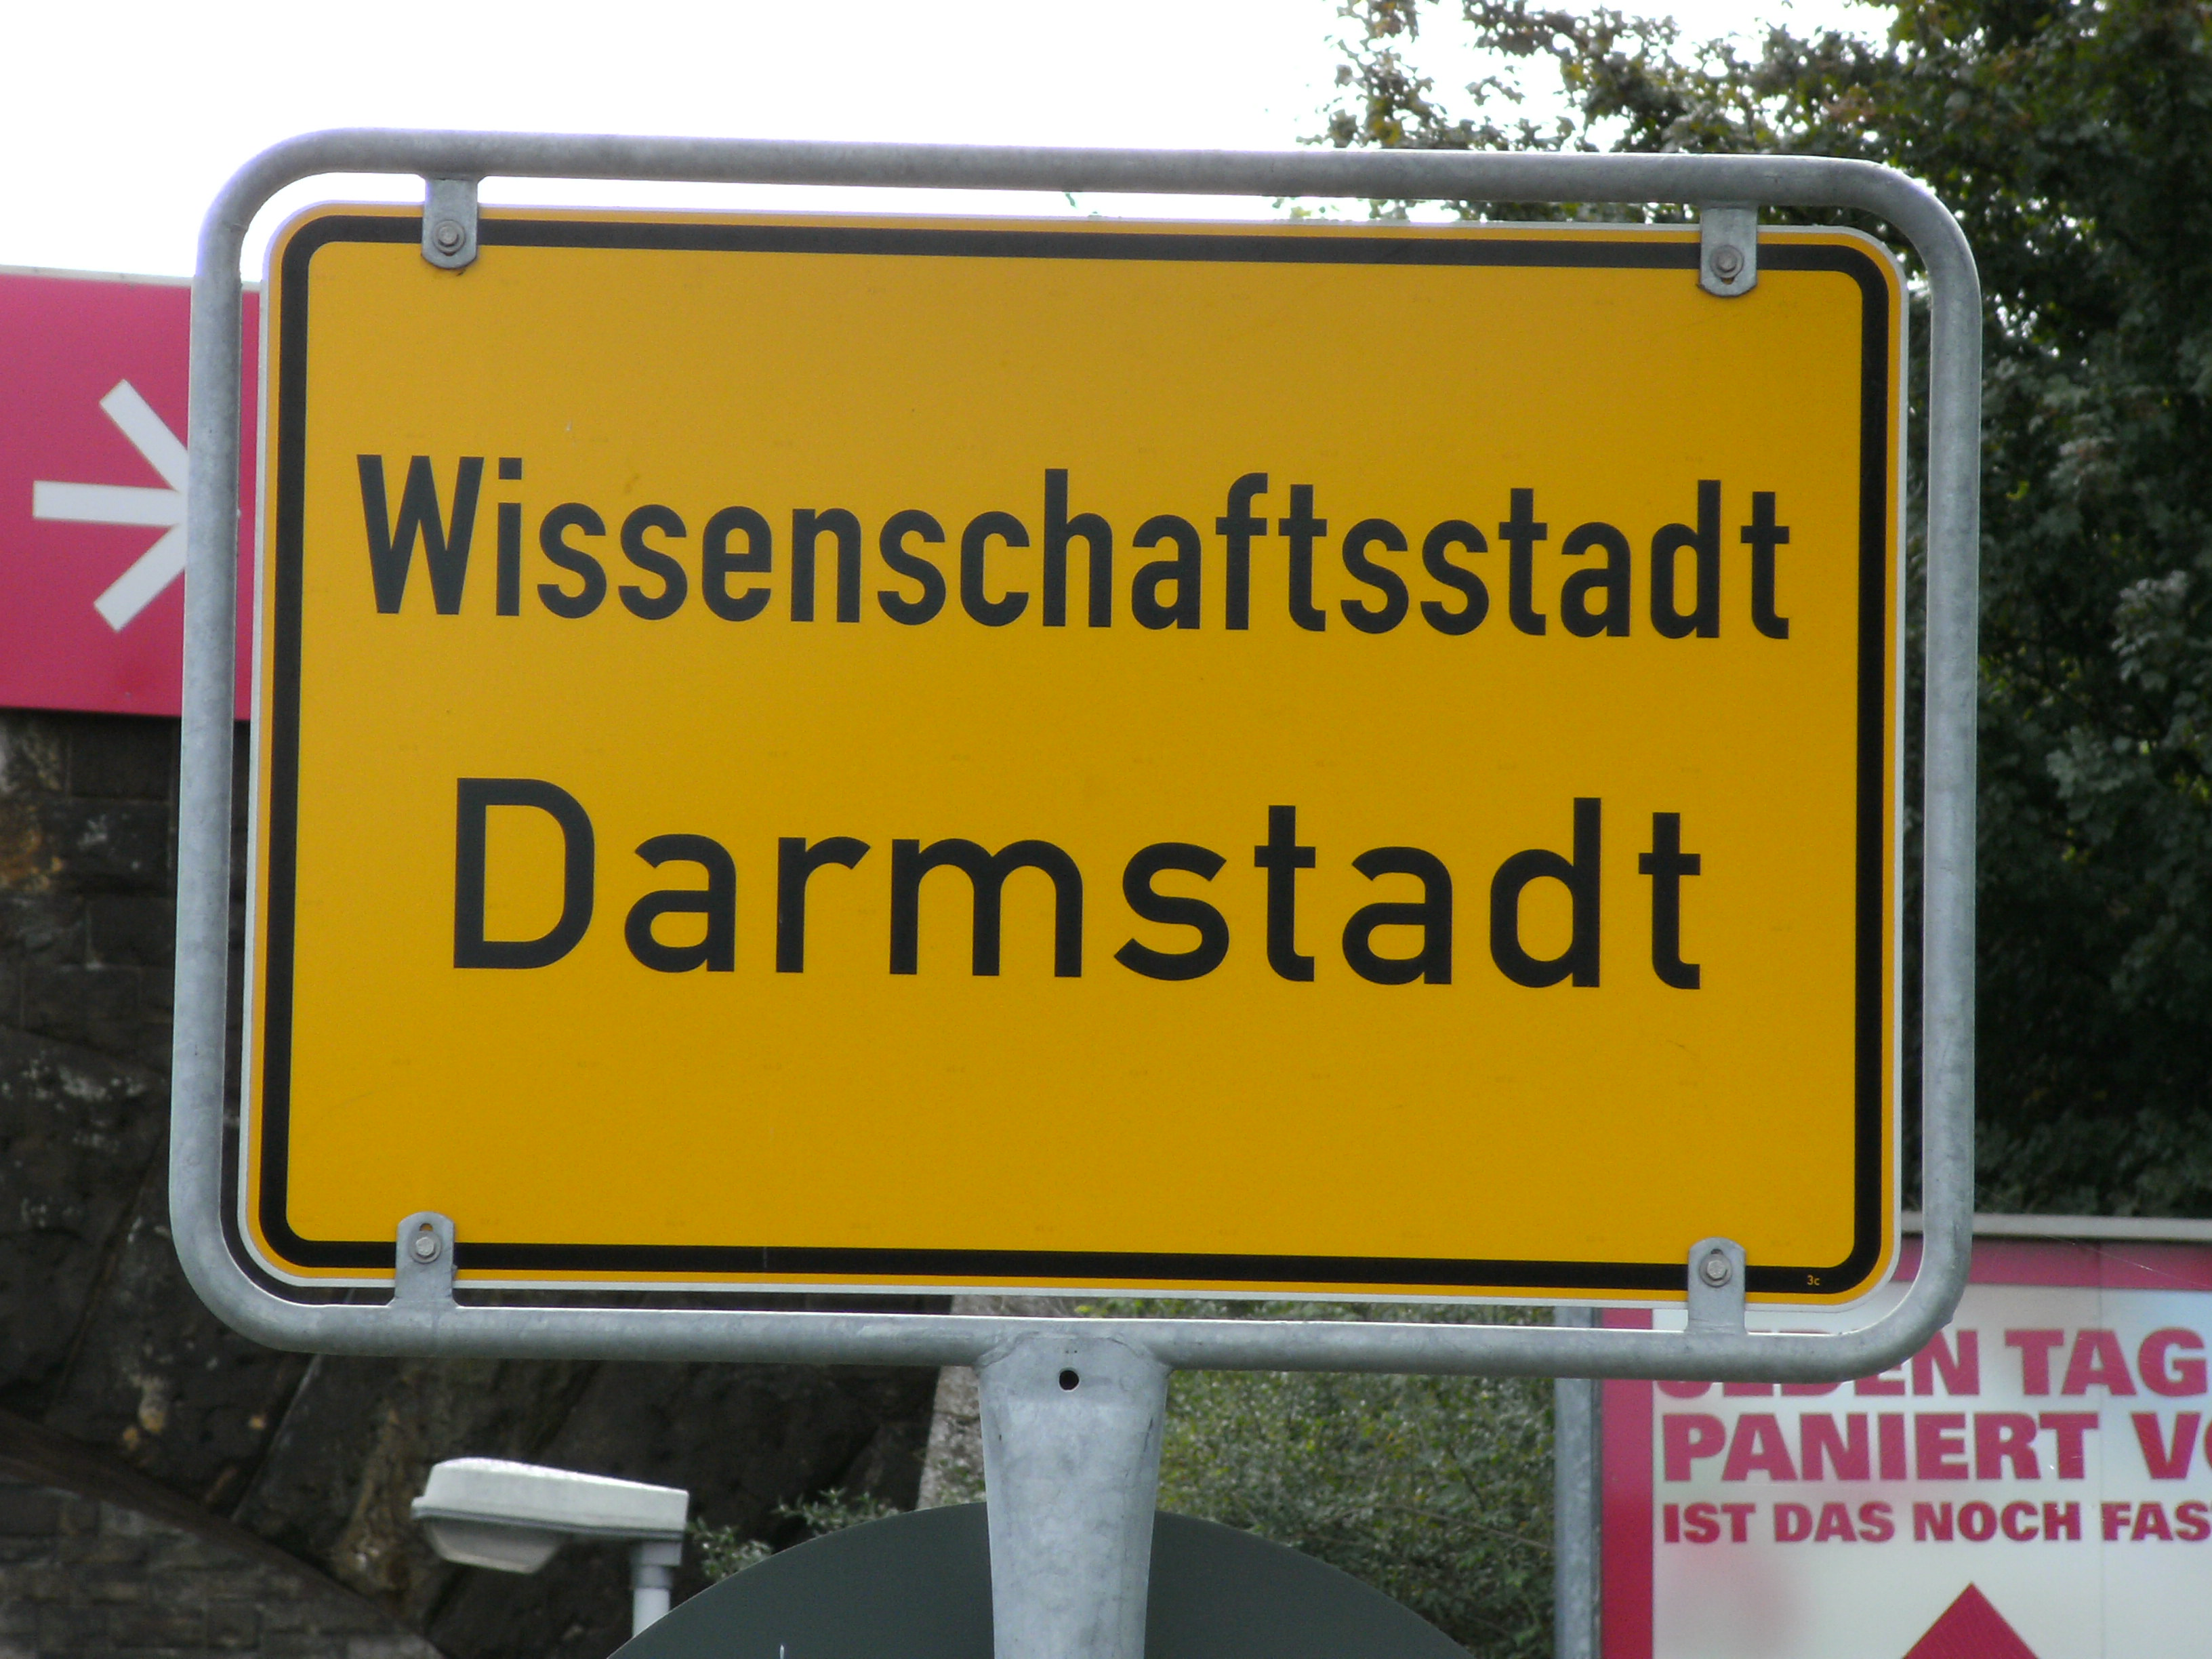 https://upload.wikimedia.org/wikipedia/commons/0/00/Darmstadt-Ortsschild.JPG